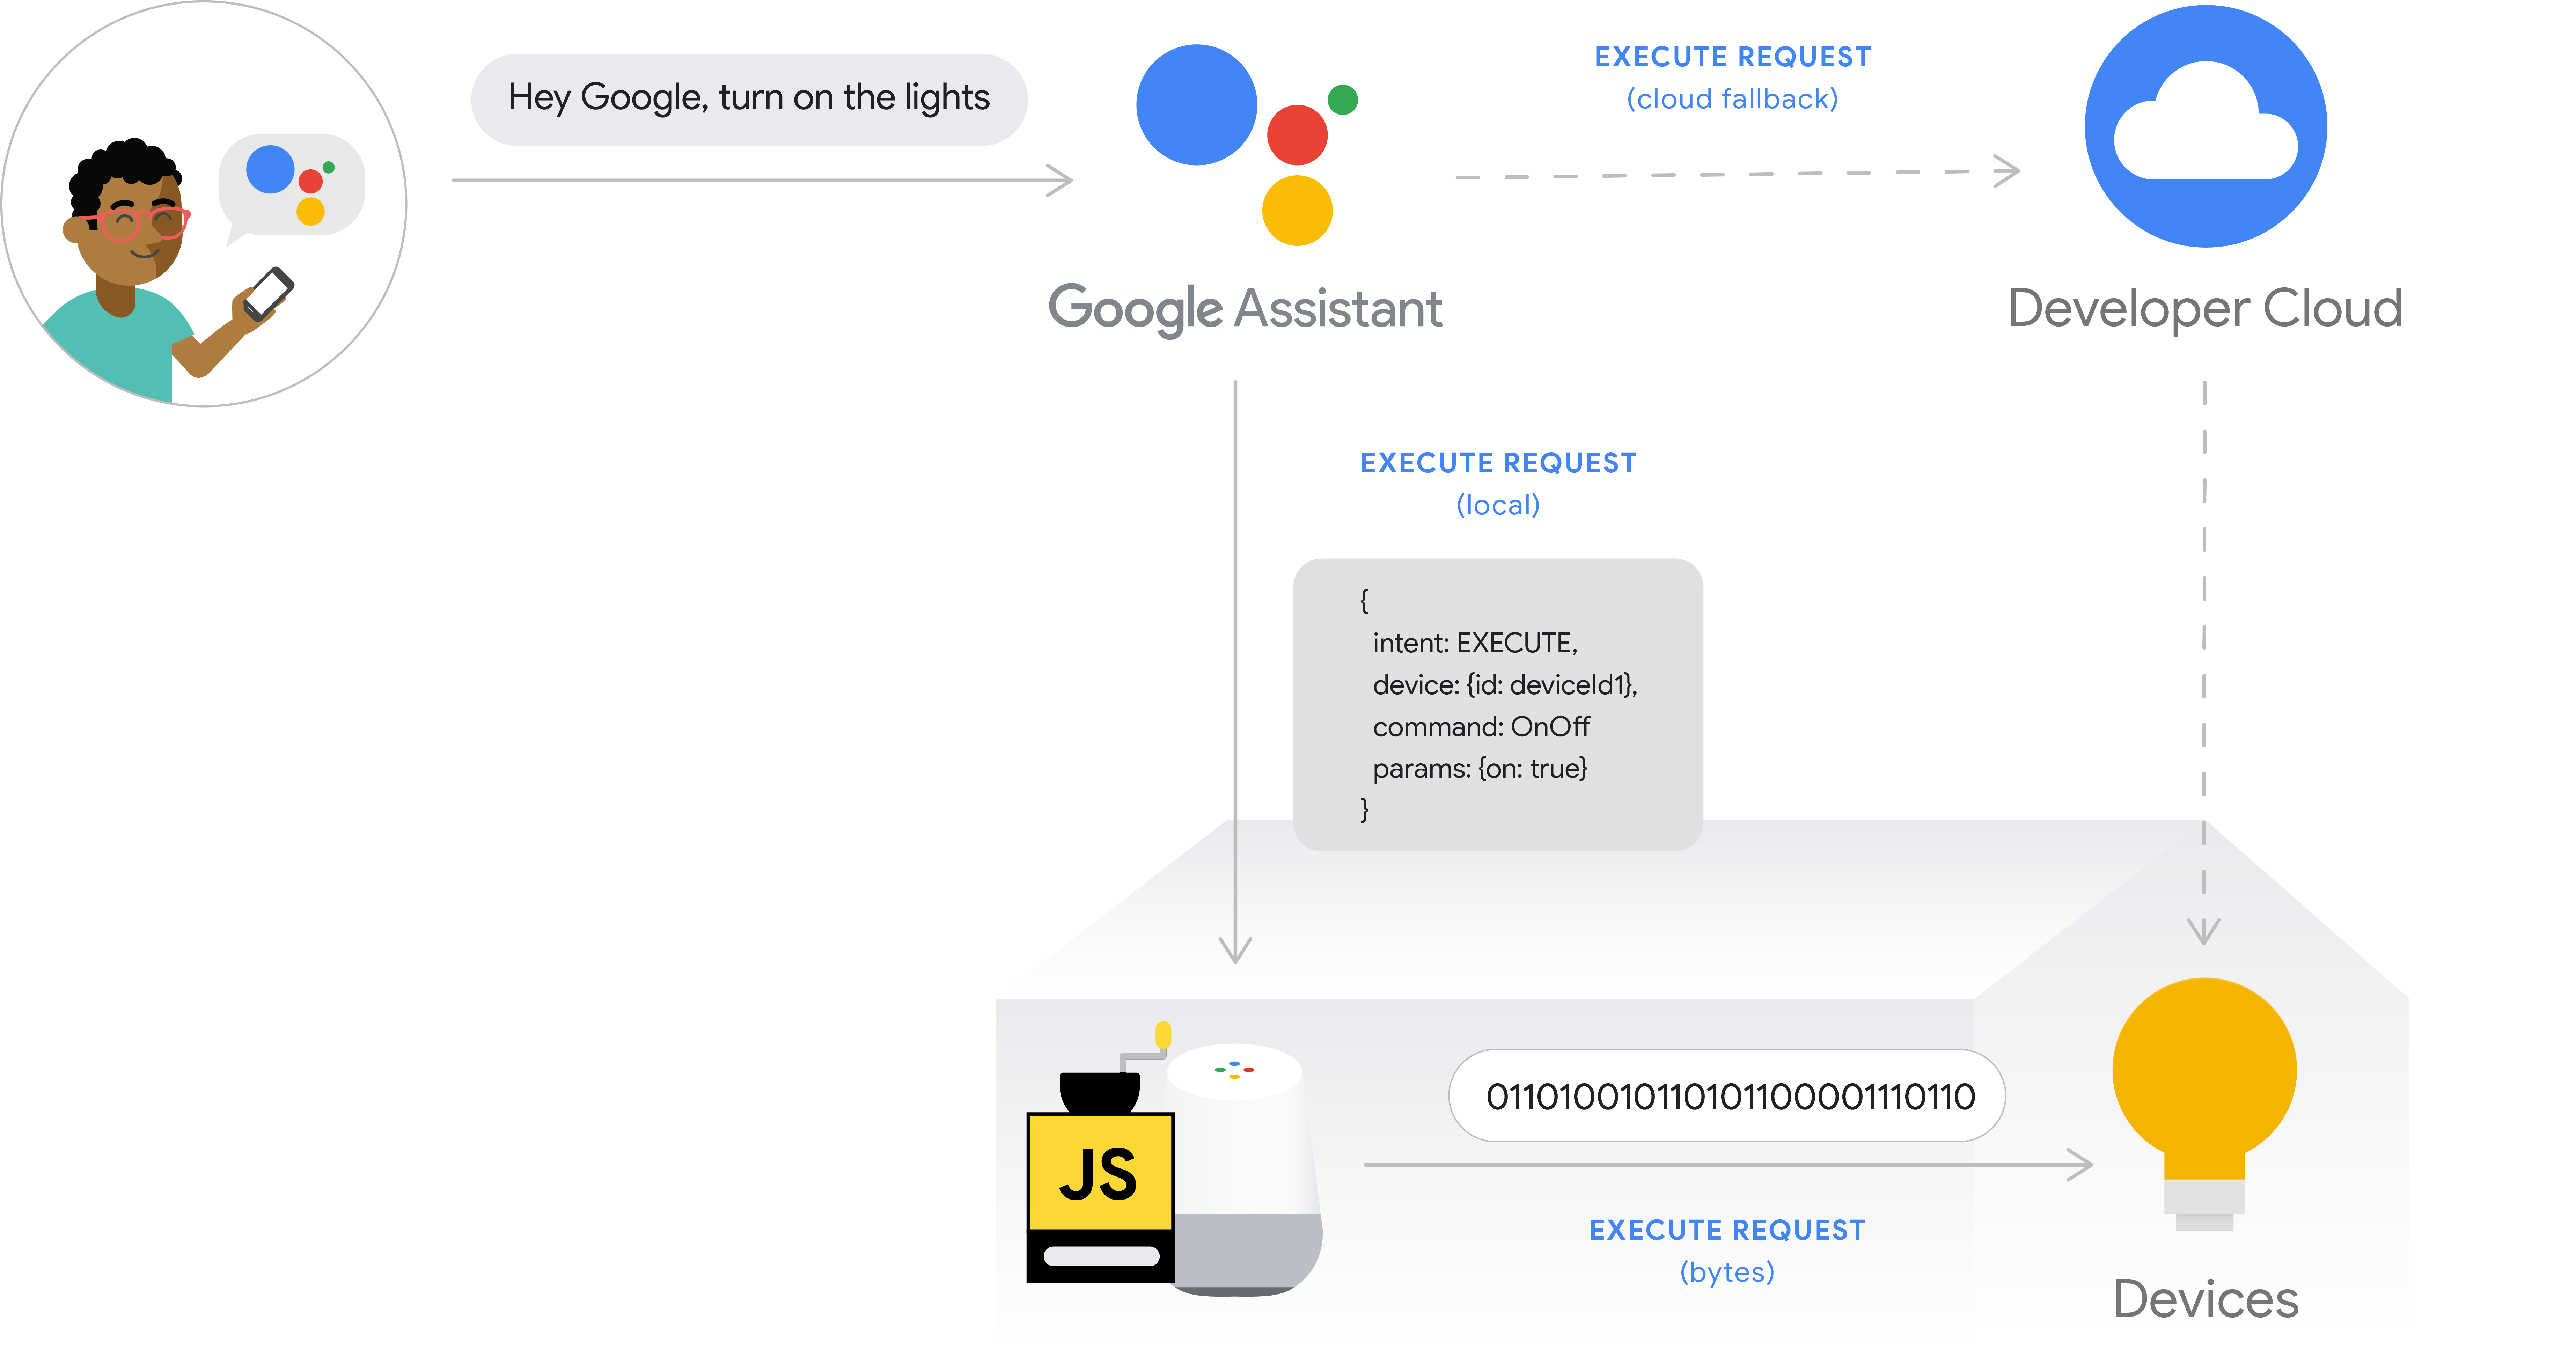 This figure shows the execution flow for local fulfillment. The             execution path captures a user's intent from a phone with             Google Assistant, then the user intent is processed by             the Google Cloud, then it is executed locally on the Google Home             device and the command is issued directly to the device hub or             directly to the device. The developer cloud is available as a             cloud fallback.